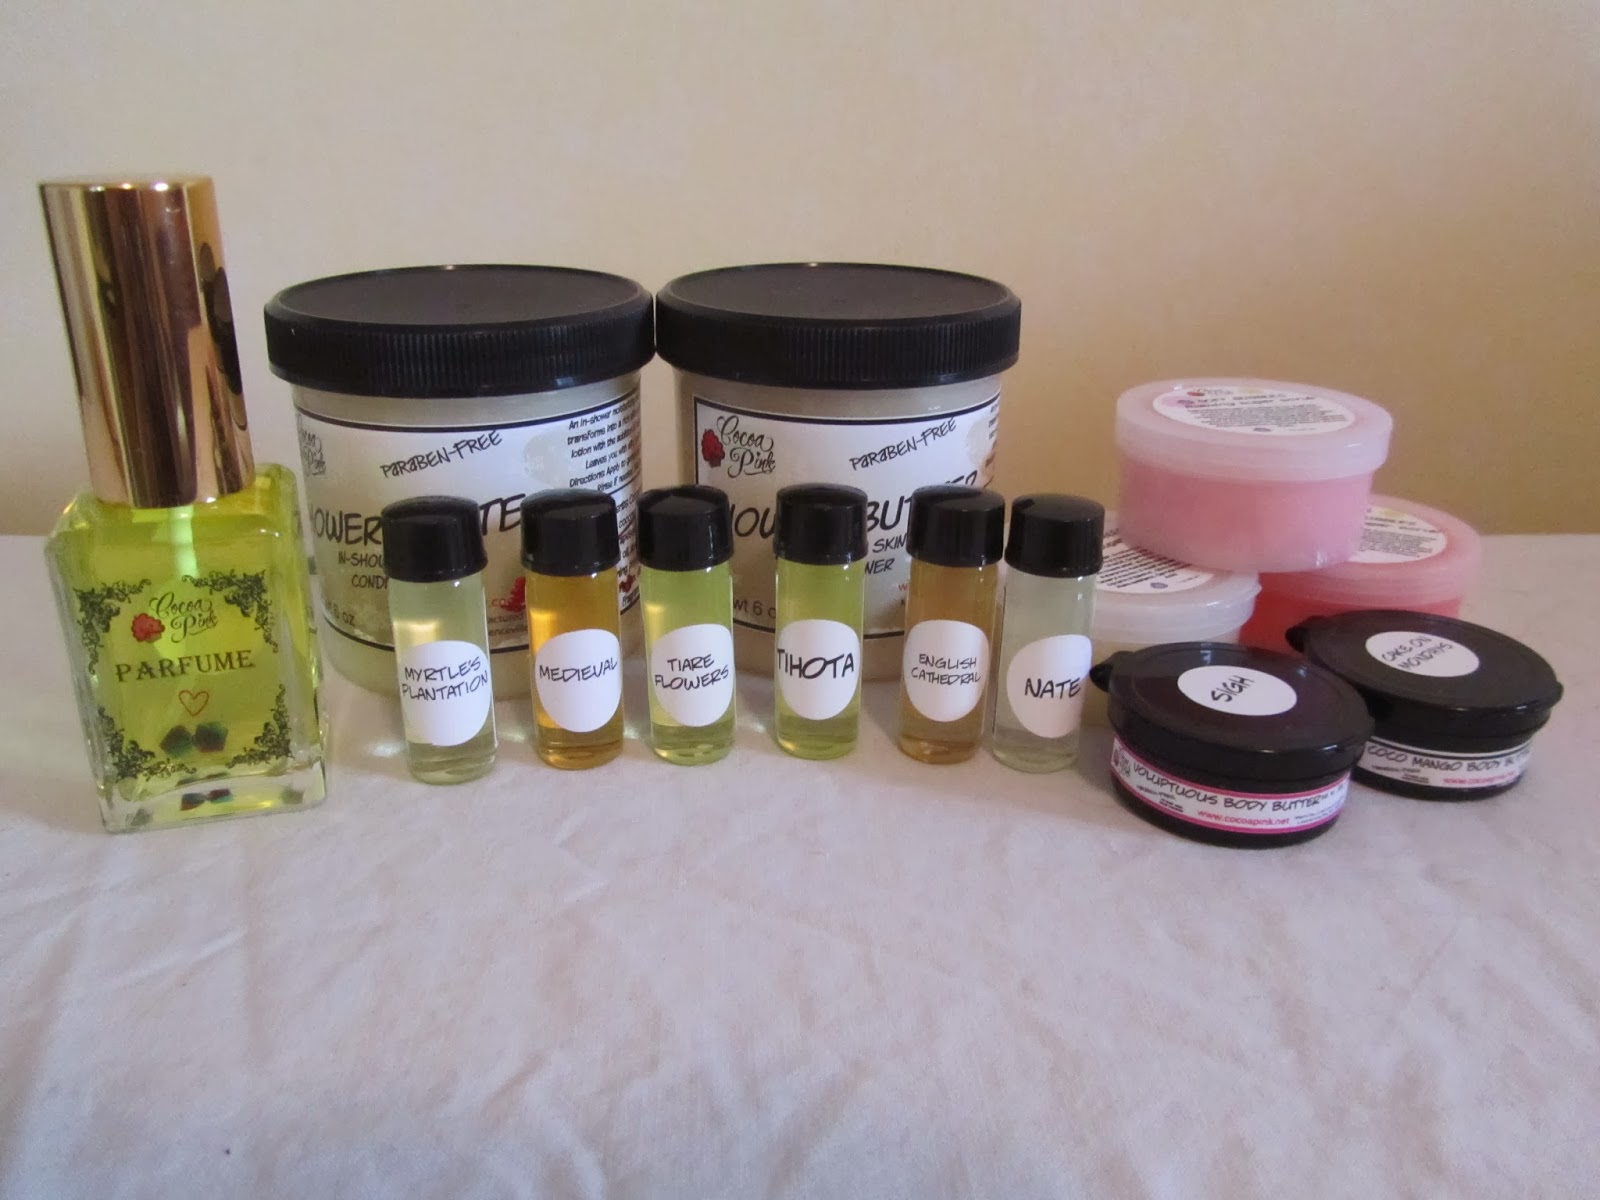 peacecat this 'n' that cocoa pink review - they offer several types of products from perfumes to lotions and scrubs tohair care i've ordered from them several times shipping takes a fewweeks